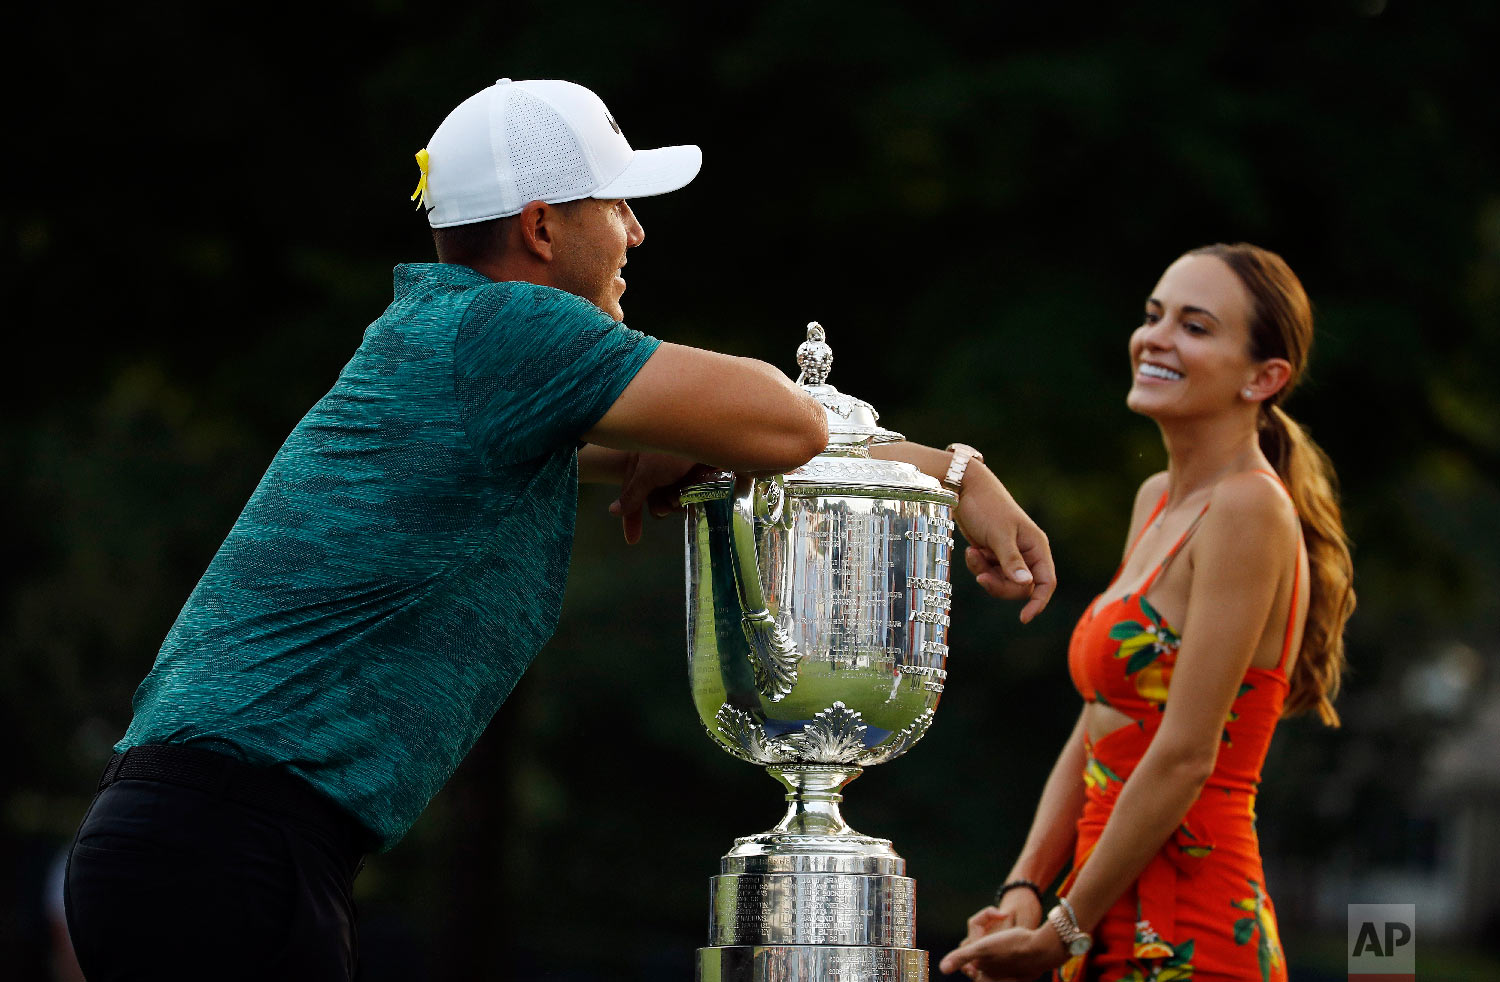 Brooks Koepka leans on the Wanamaker Trophy as he talks with his girlfriend, Jena Sims, after winning the PGA Championship golf tournament at Bellerive Country Club in St. Louis on Aug. 12, 2018. (AP Photo/Charlie Riedel)